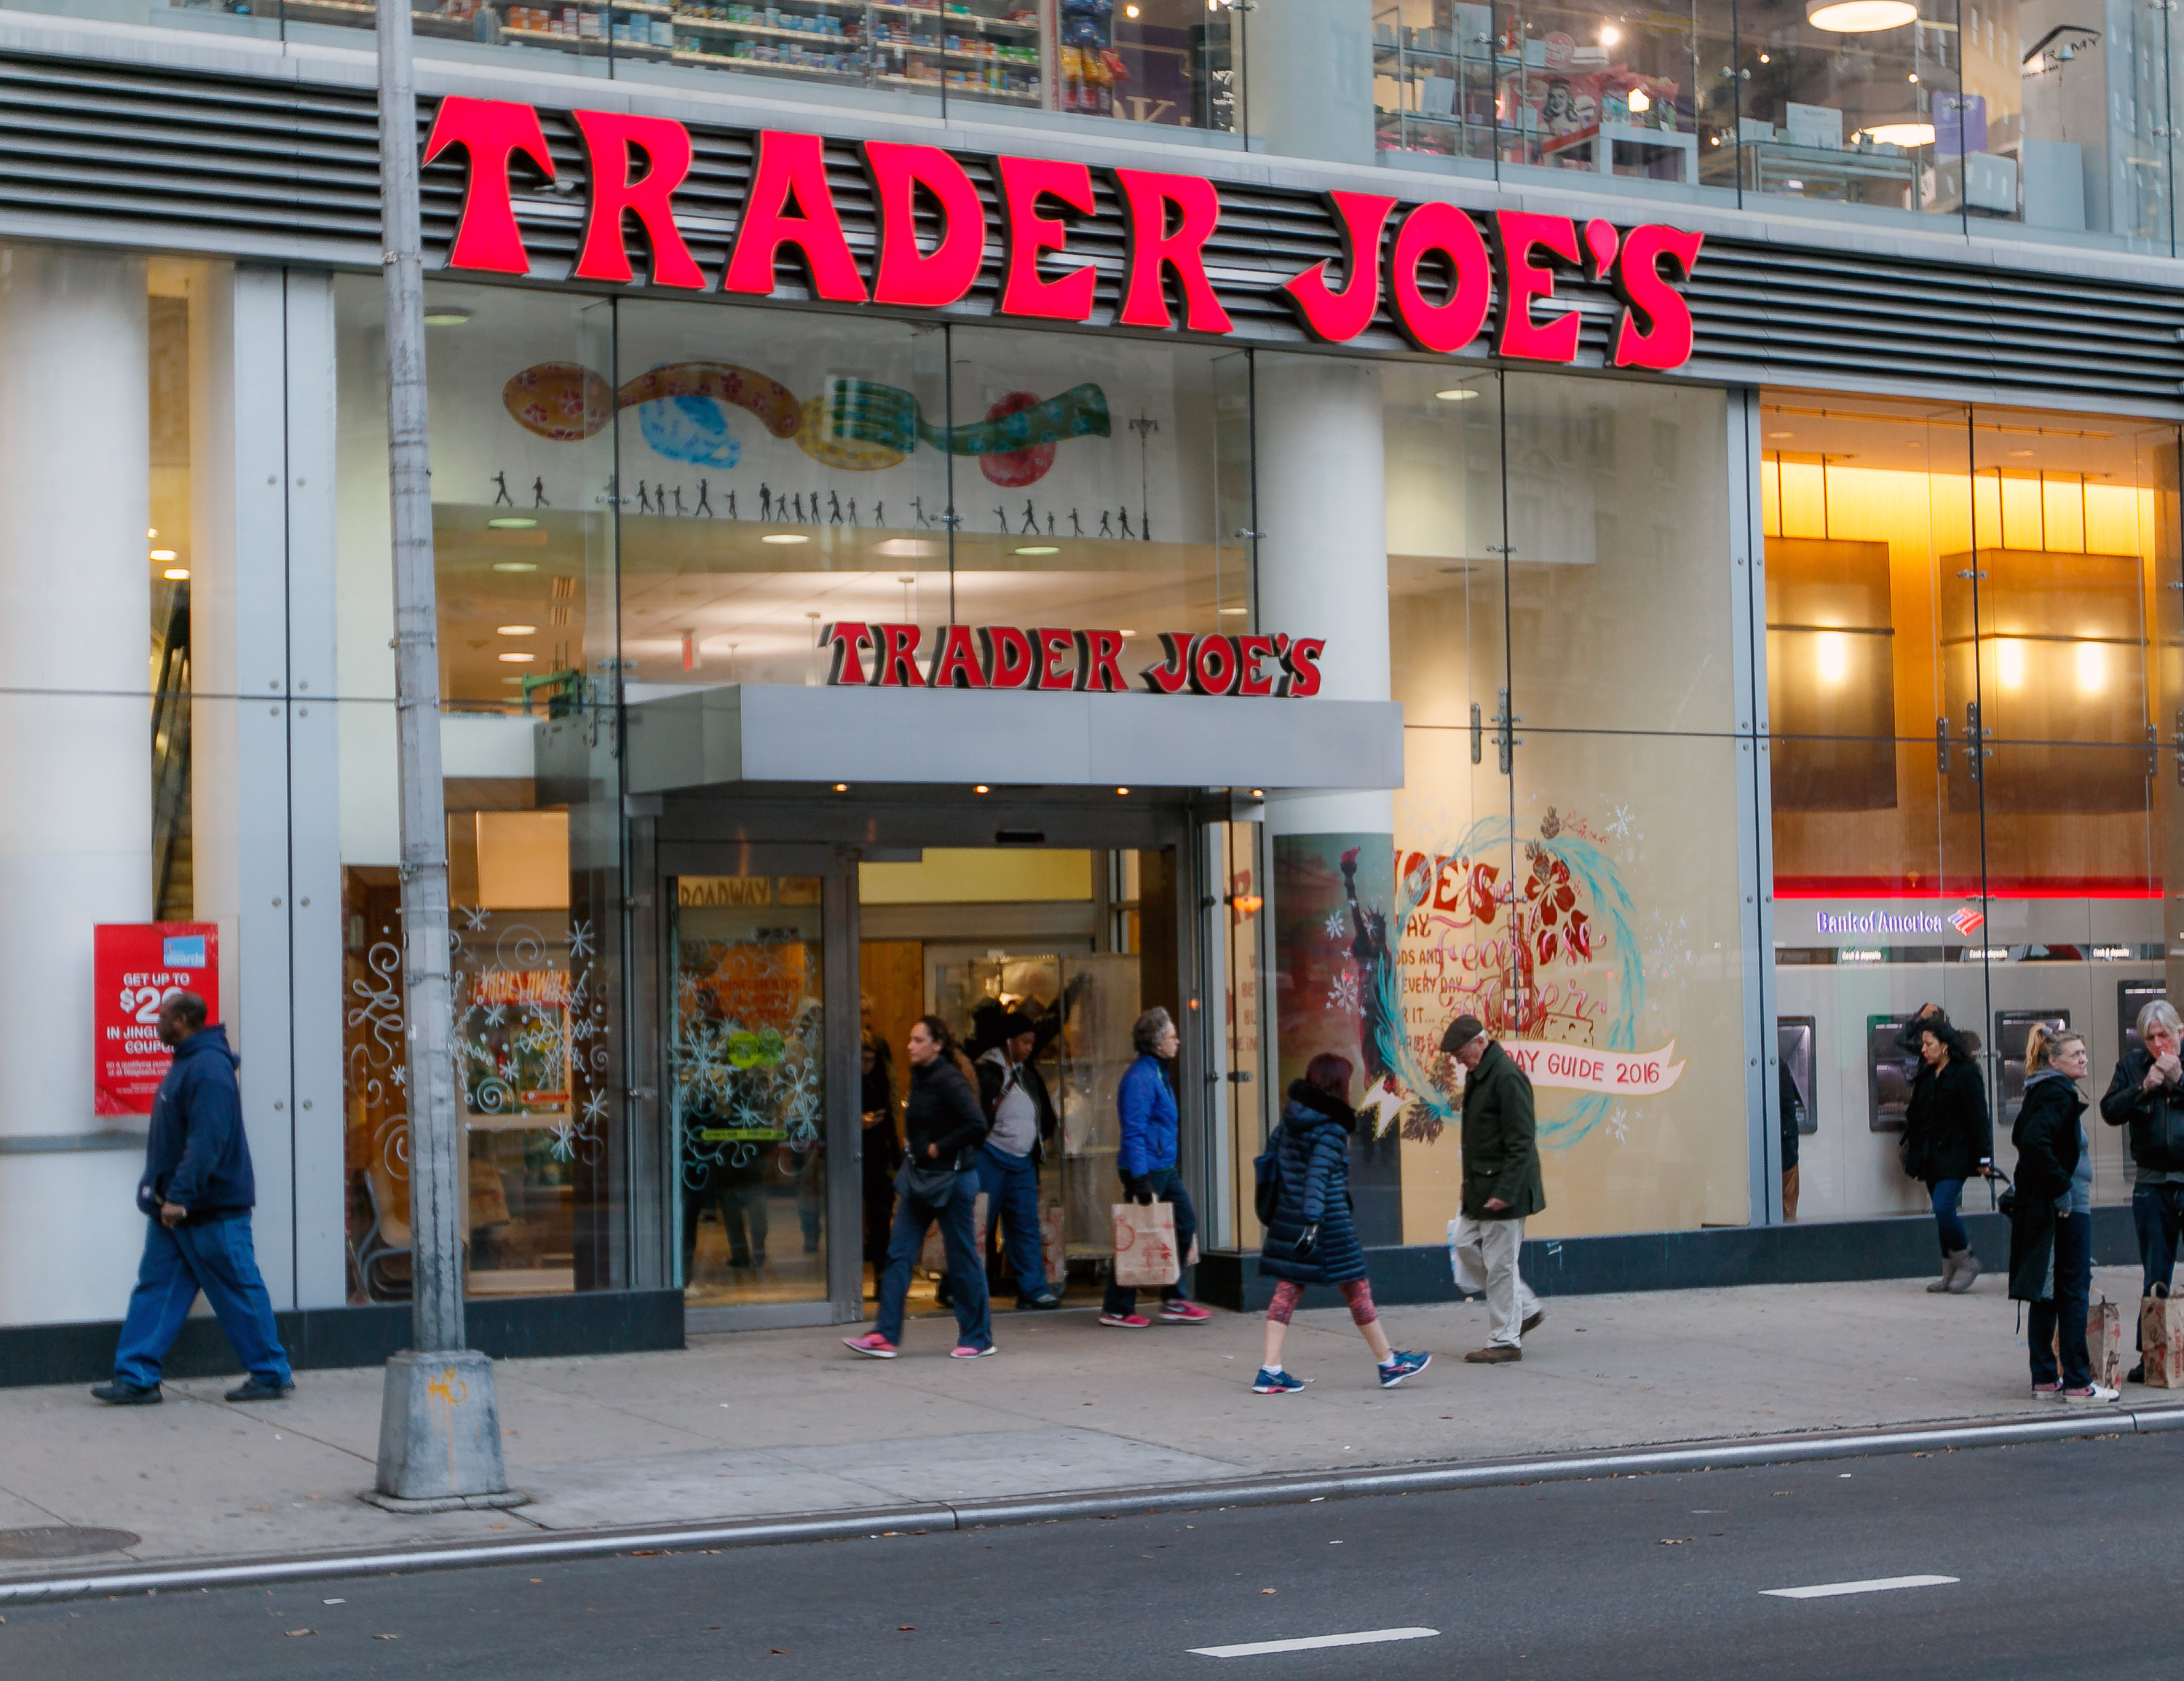 A huge new Trader Joe's is opening in NYC